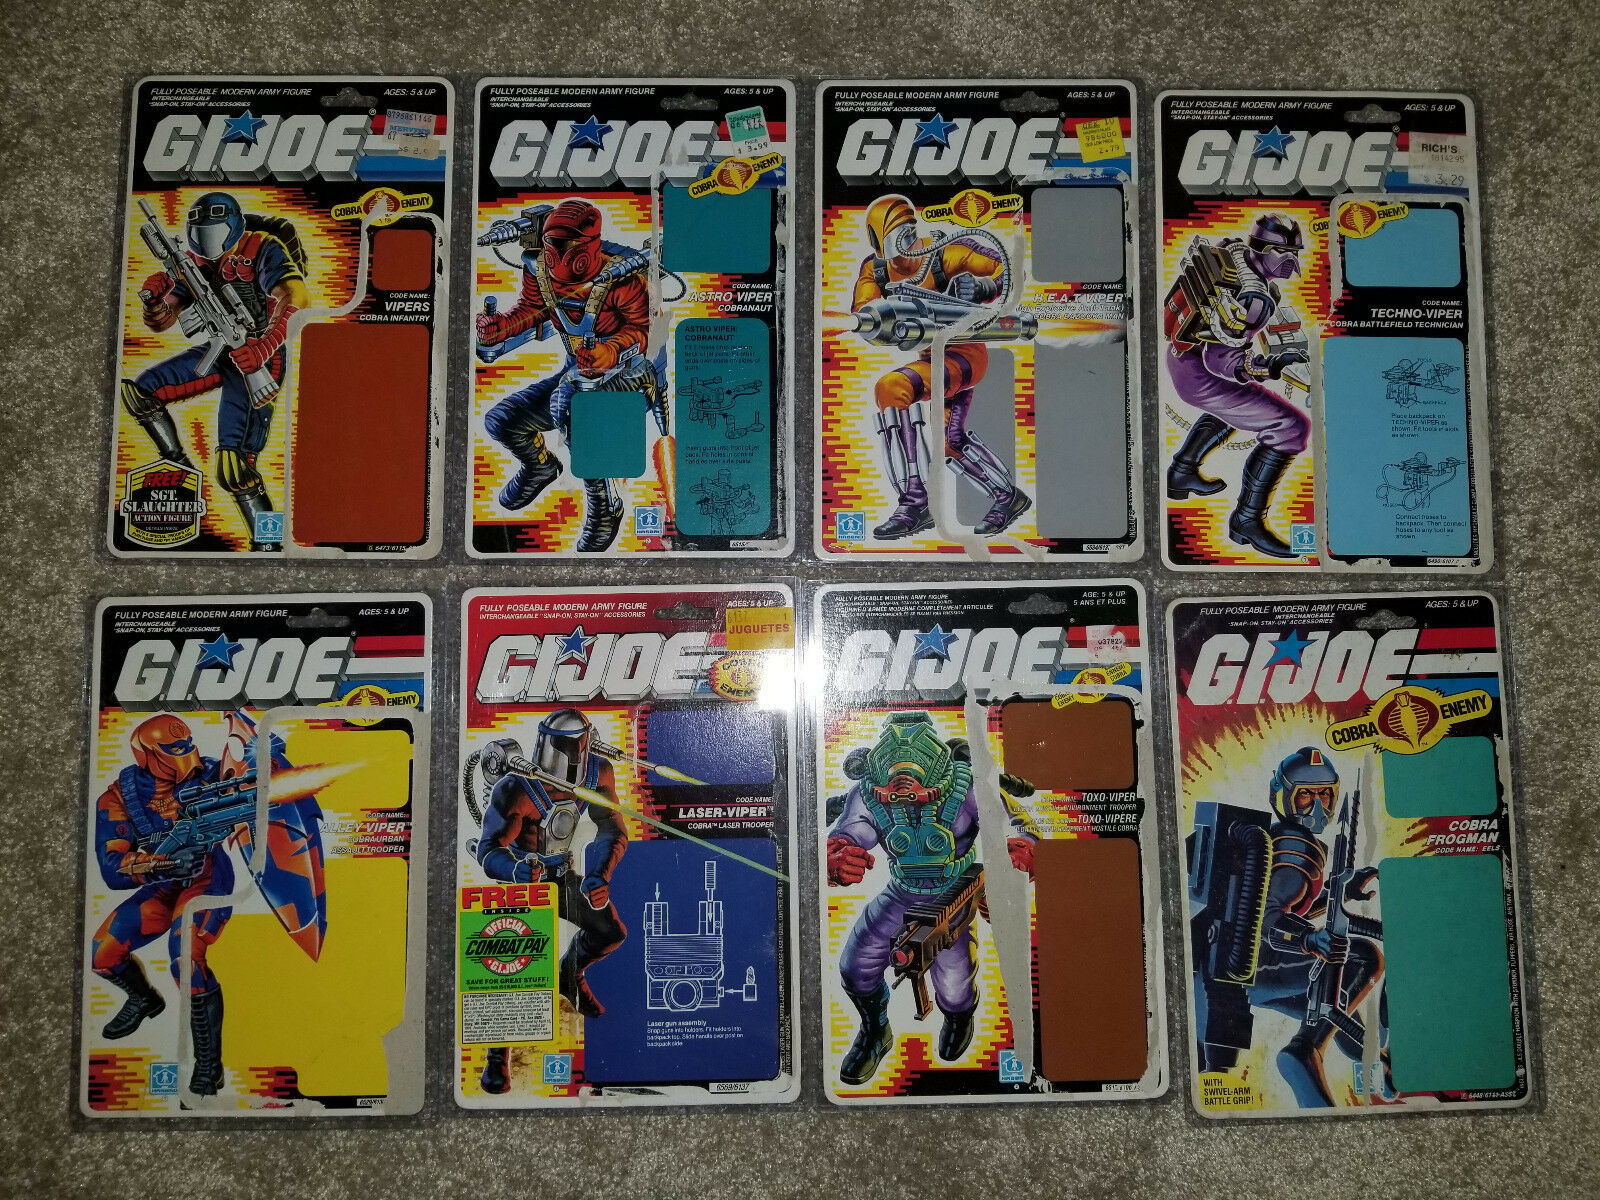 (8) Vintage GI JOE VIPER Full Card Filecard COBRA NINJA NO FIGURE TECHNO ALLEY